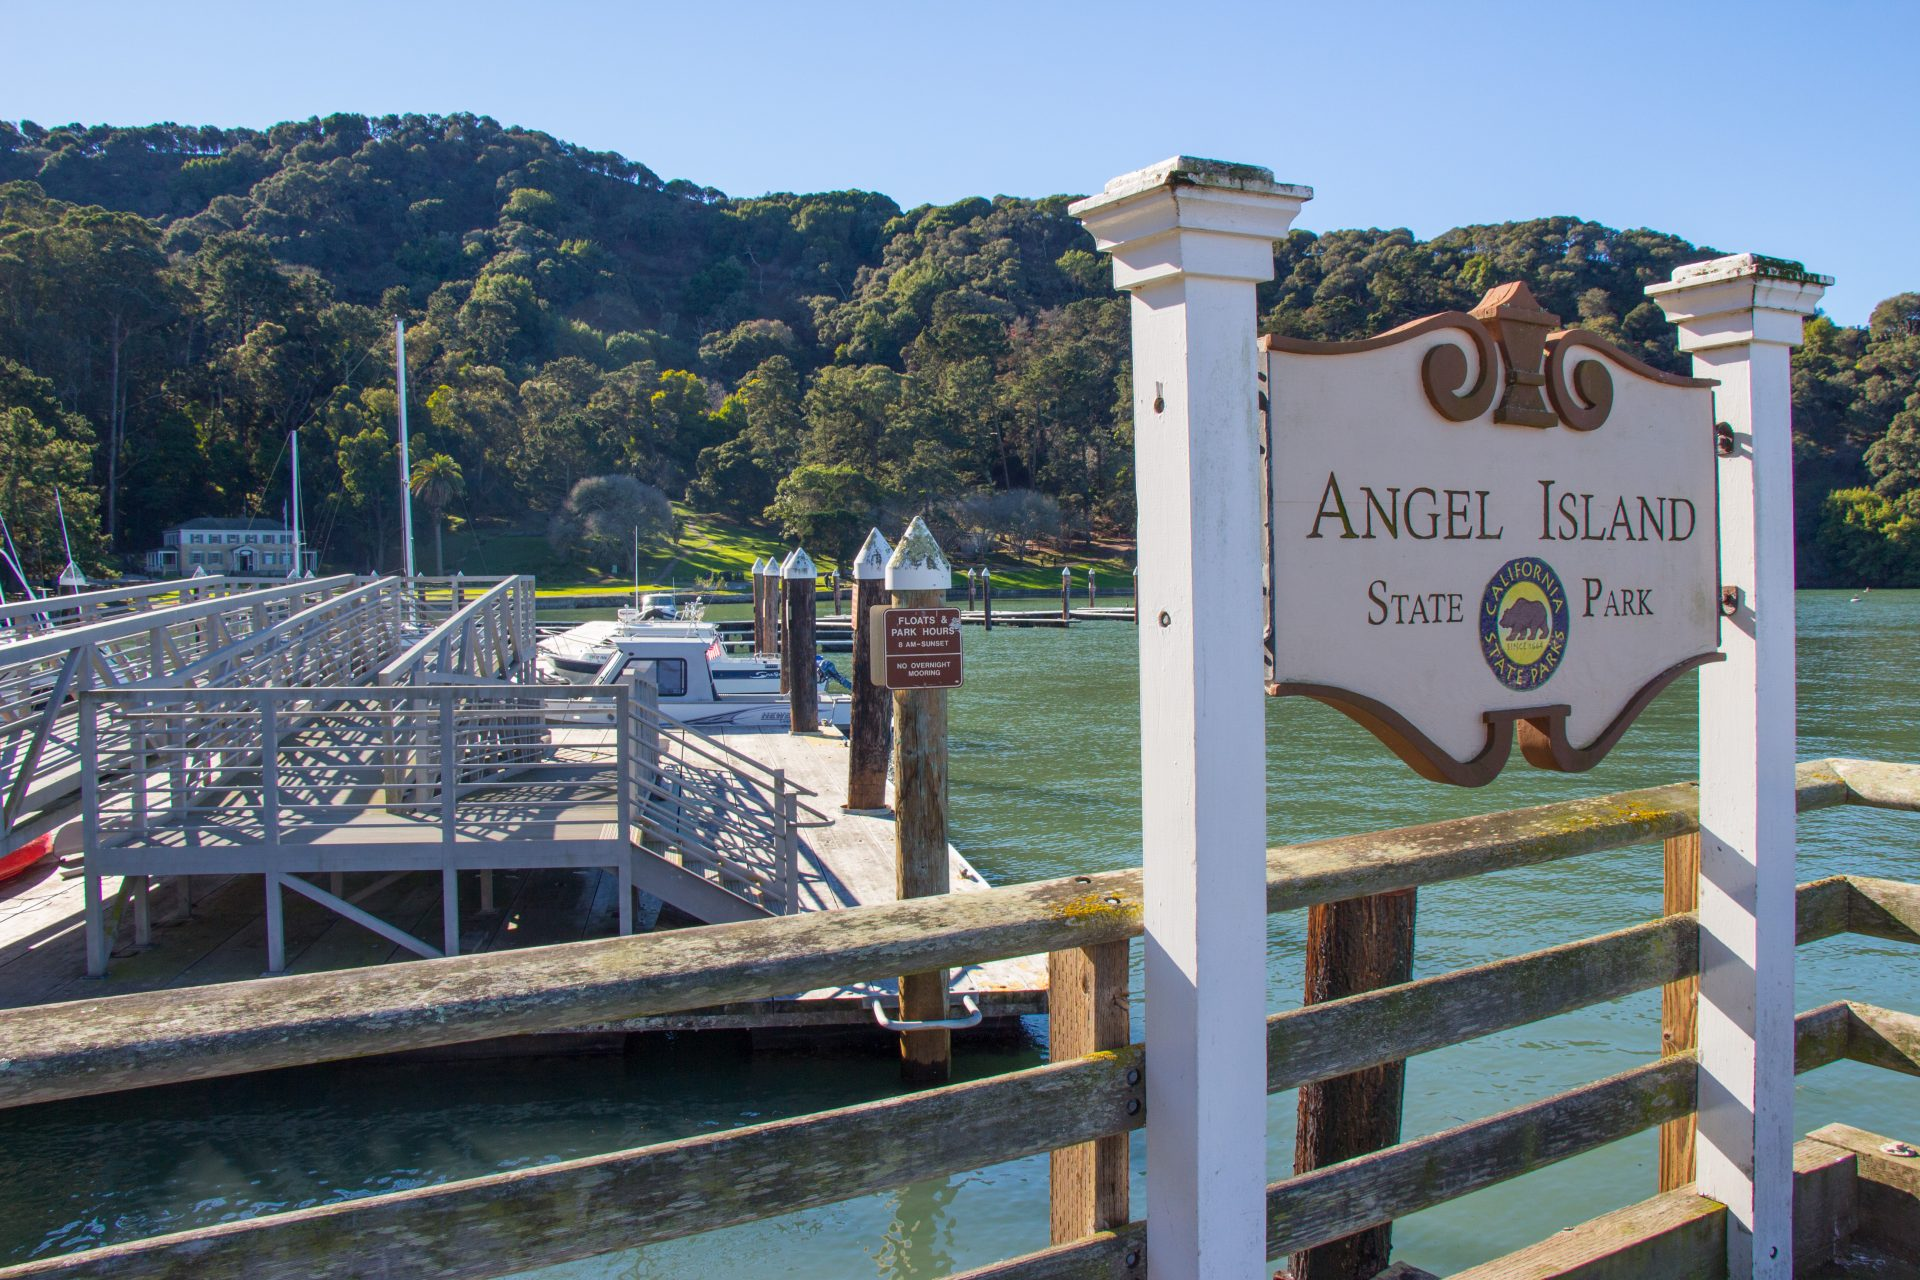 Sign for Angel Island State Park, marina beyond